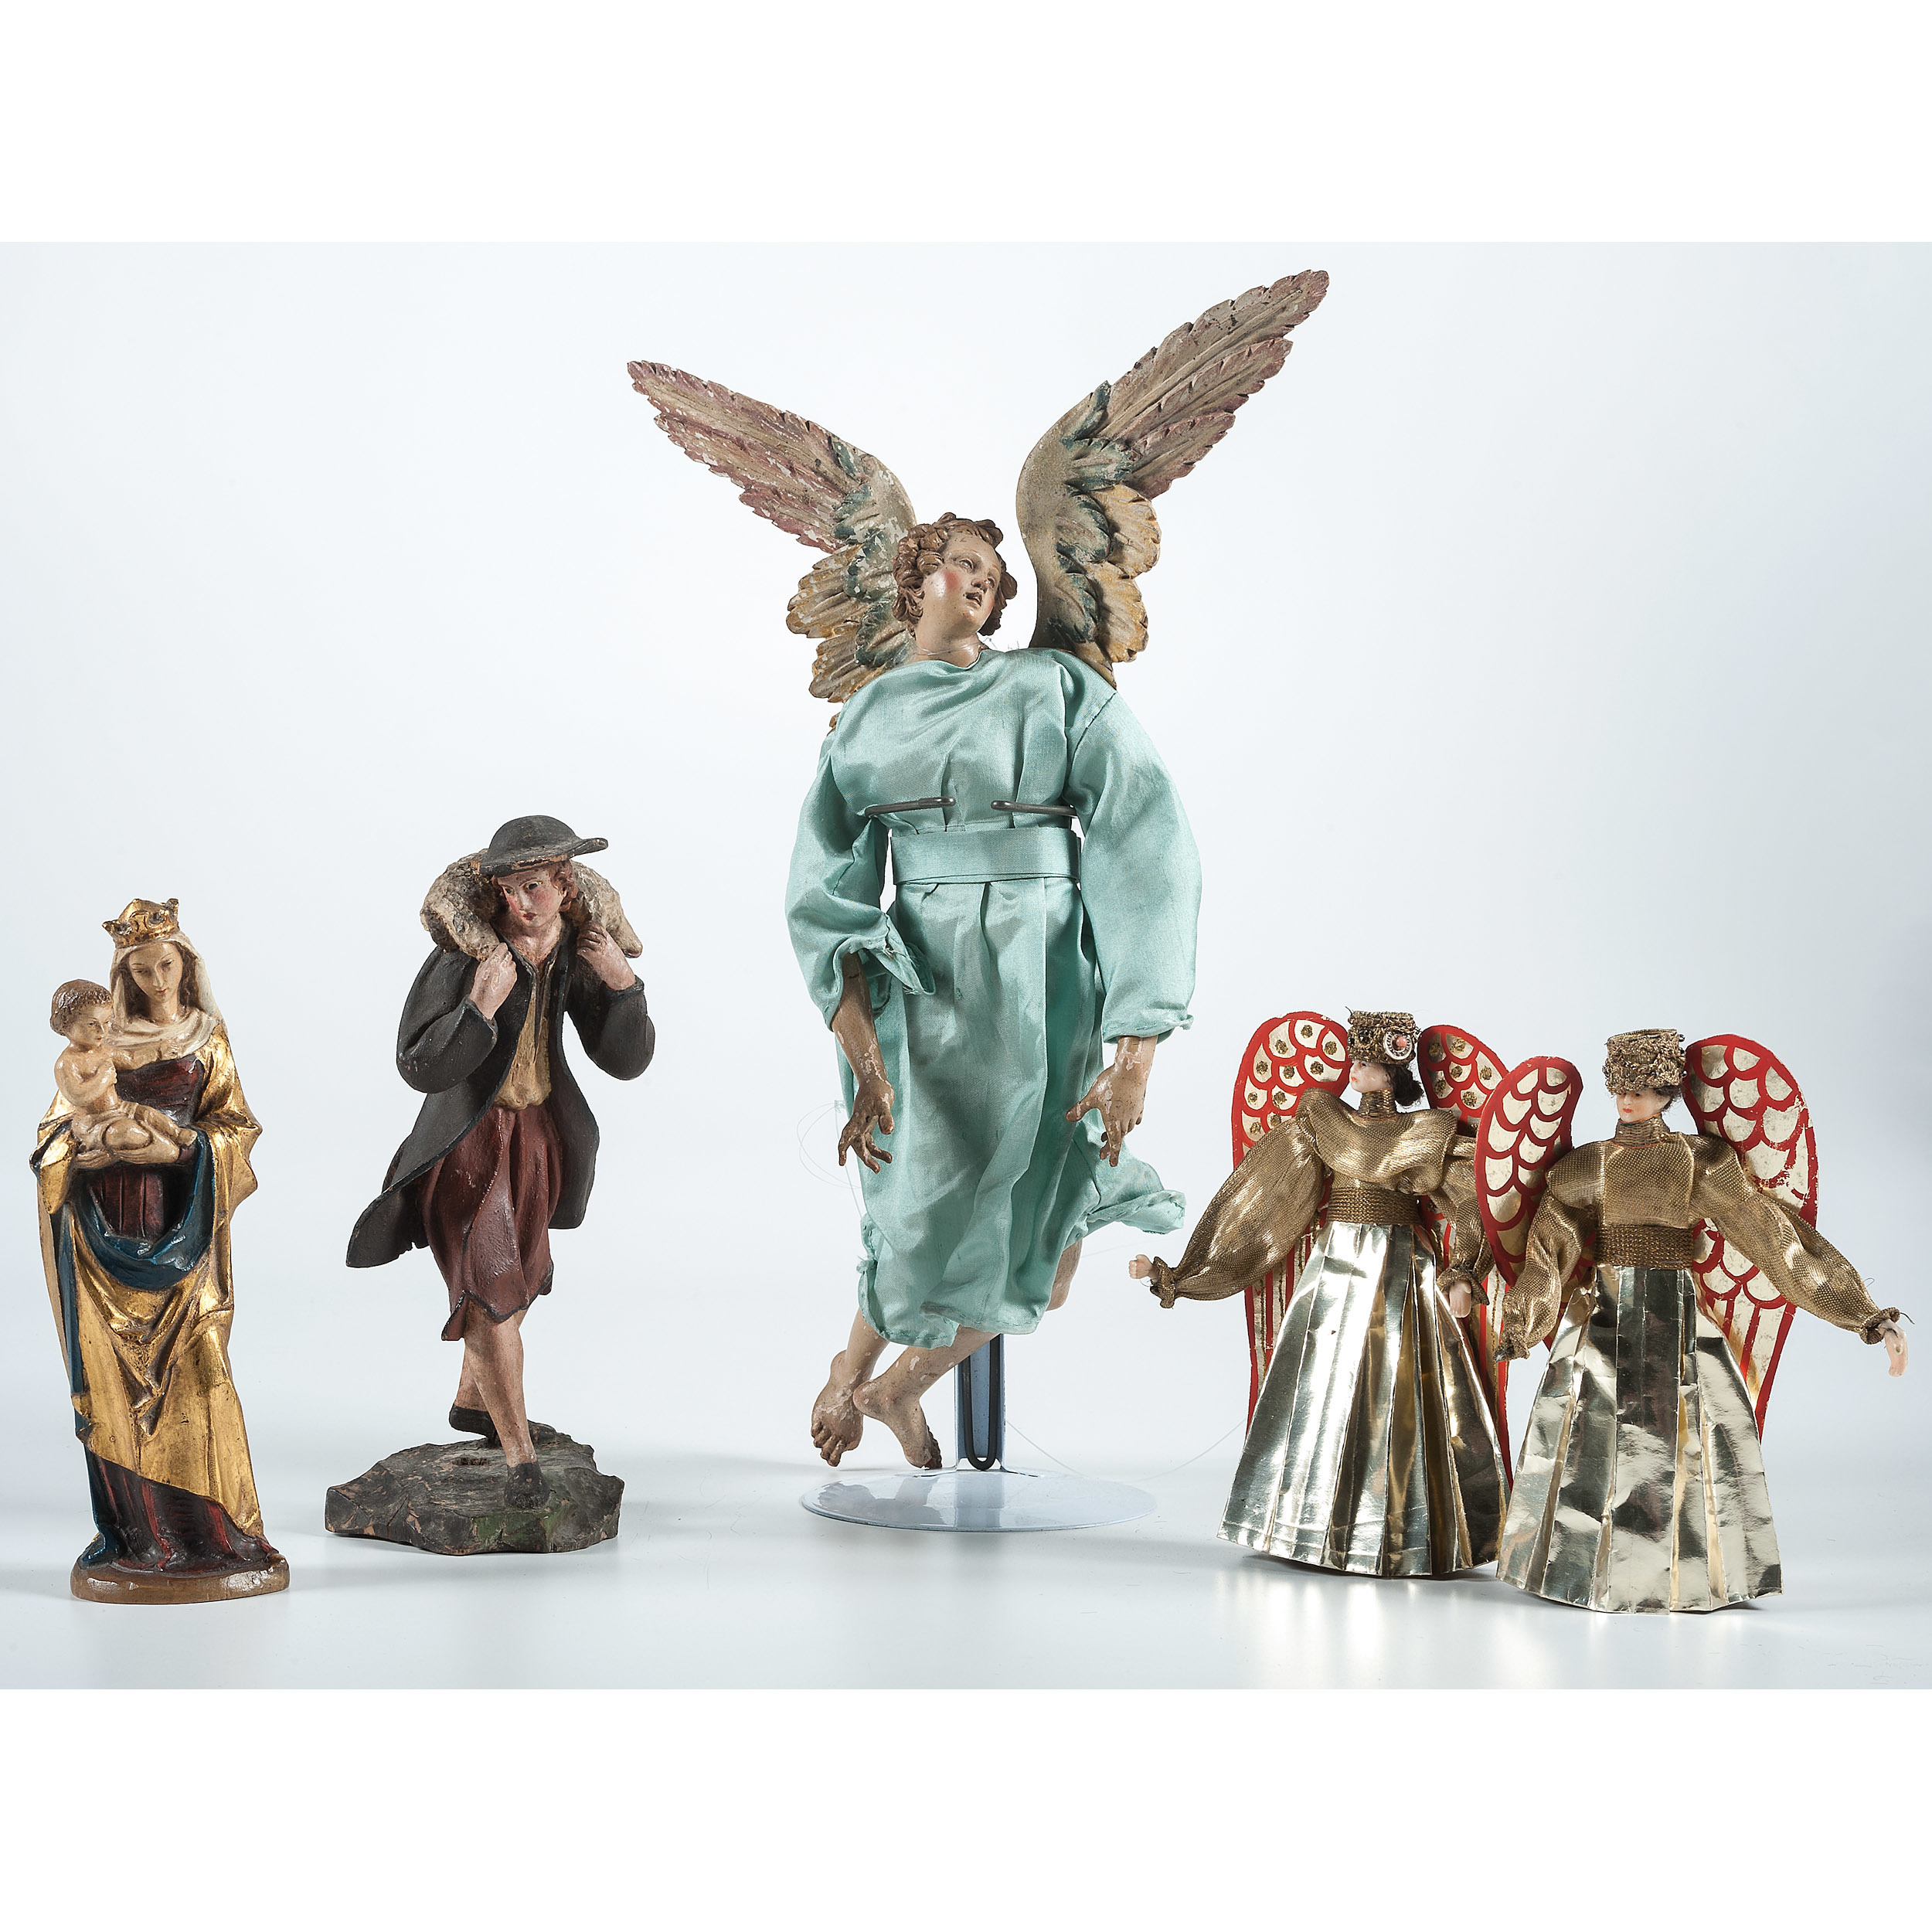 Vintage Religious Nativity Christmas Ornament: Antique Christmas Ornaments And Nativity Figures